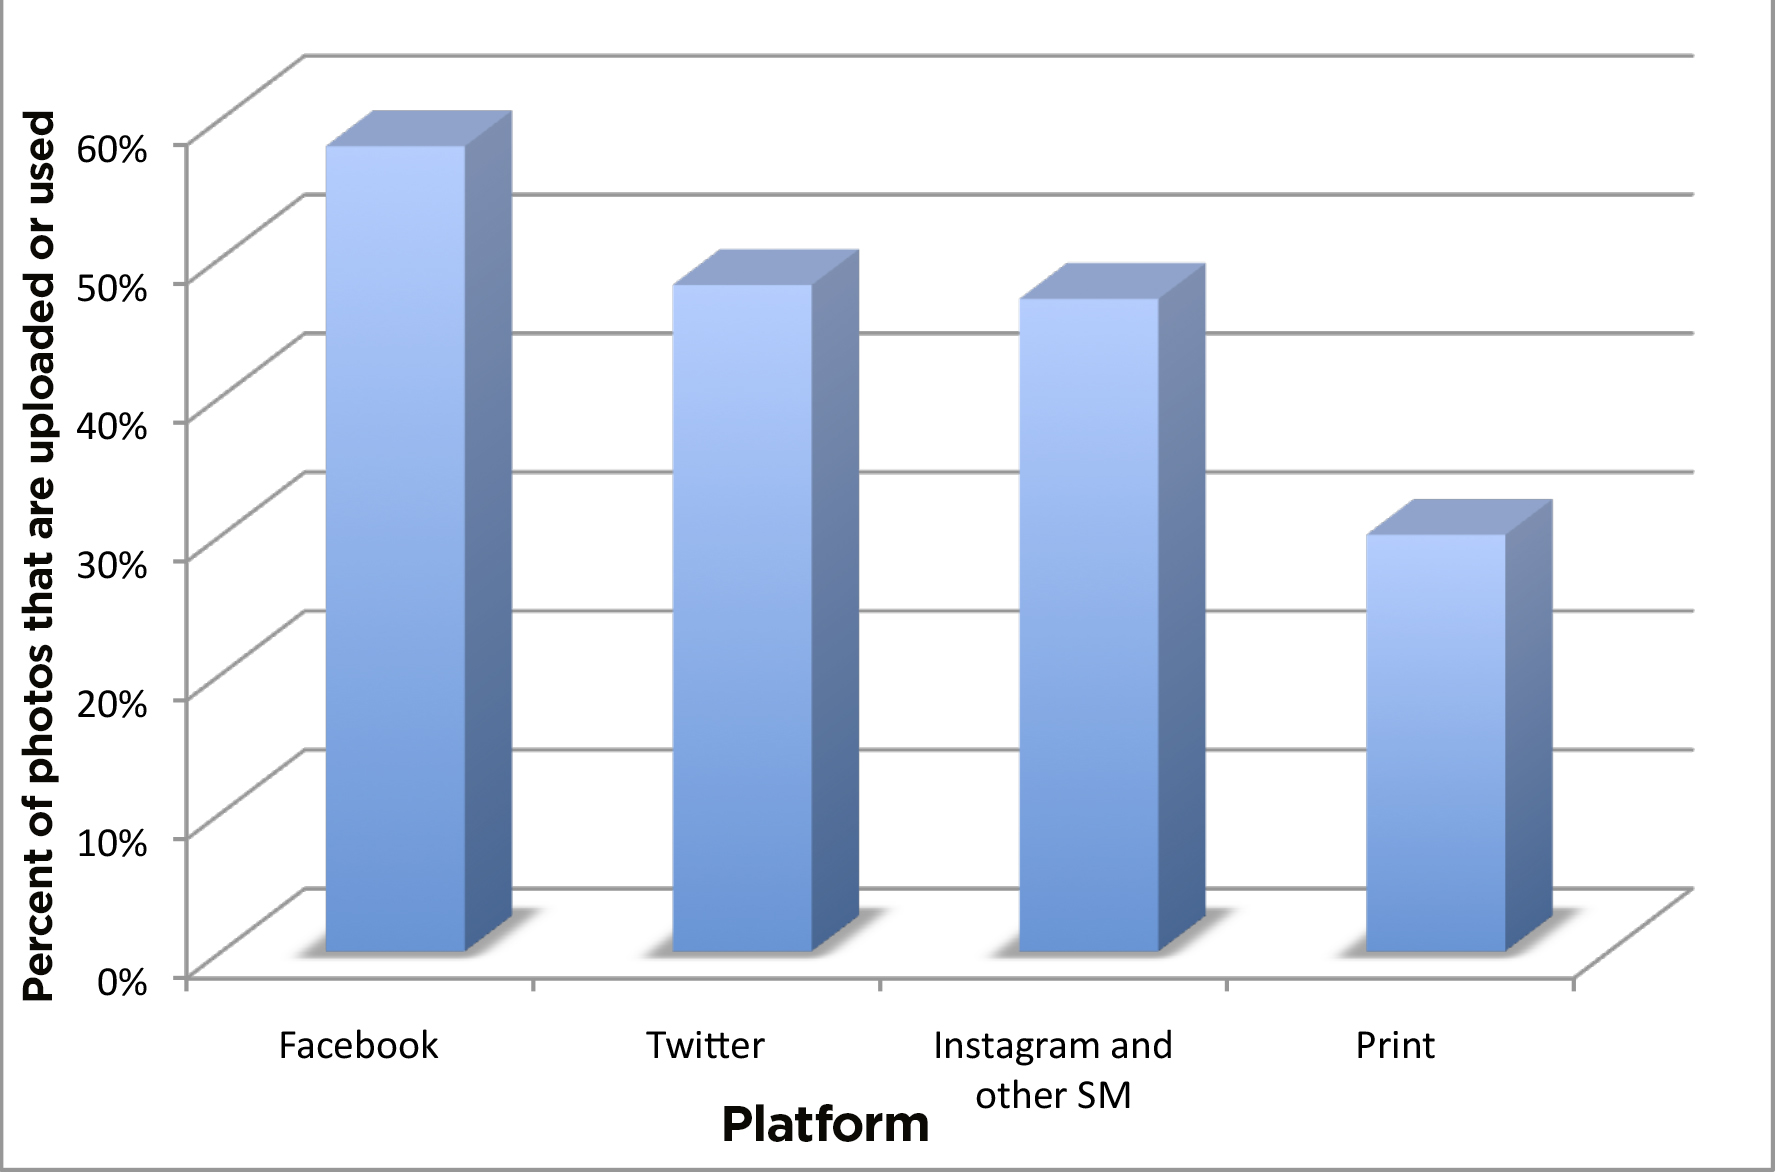 social media management by 2020pv